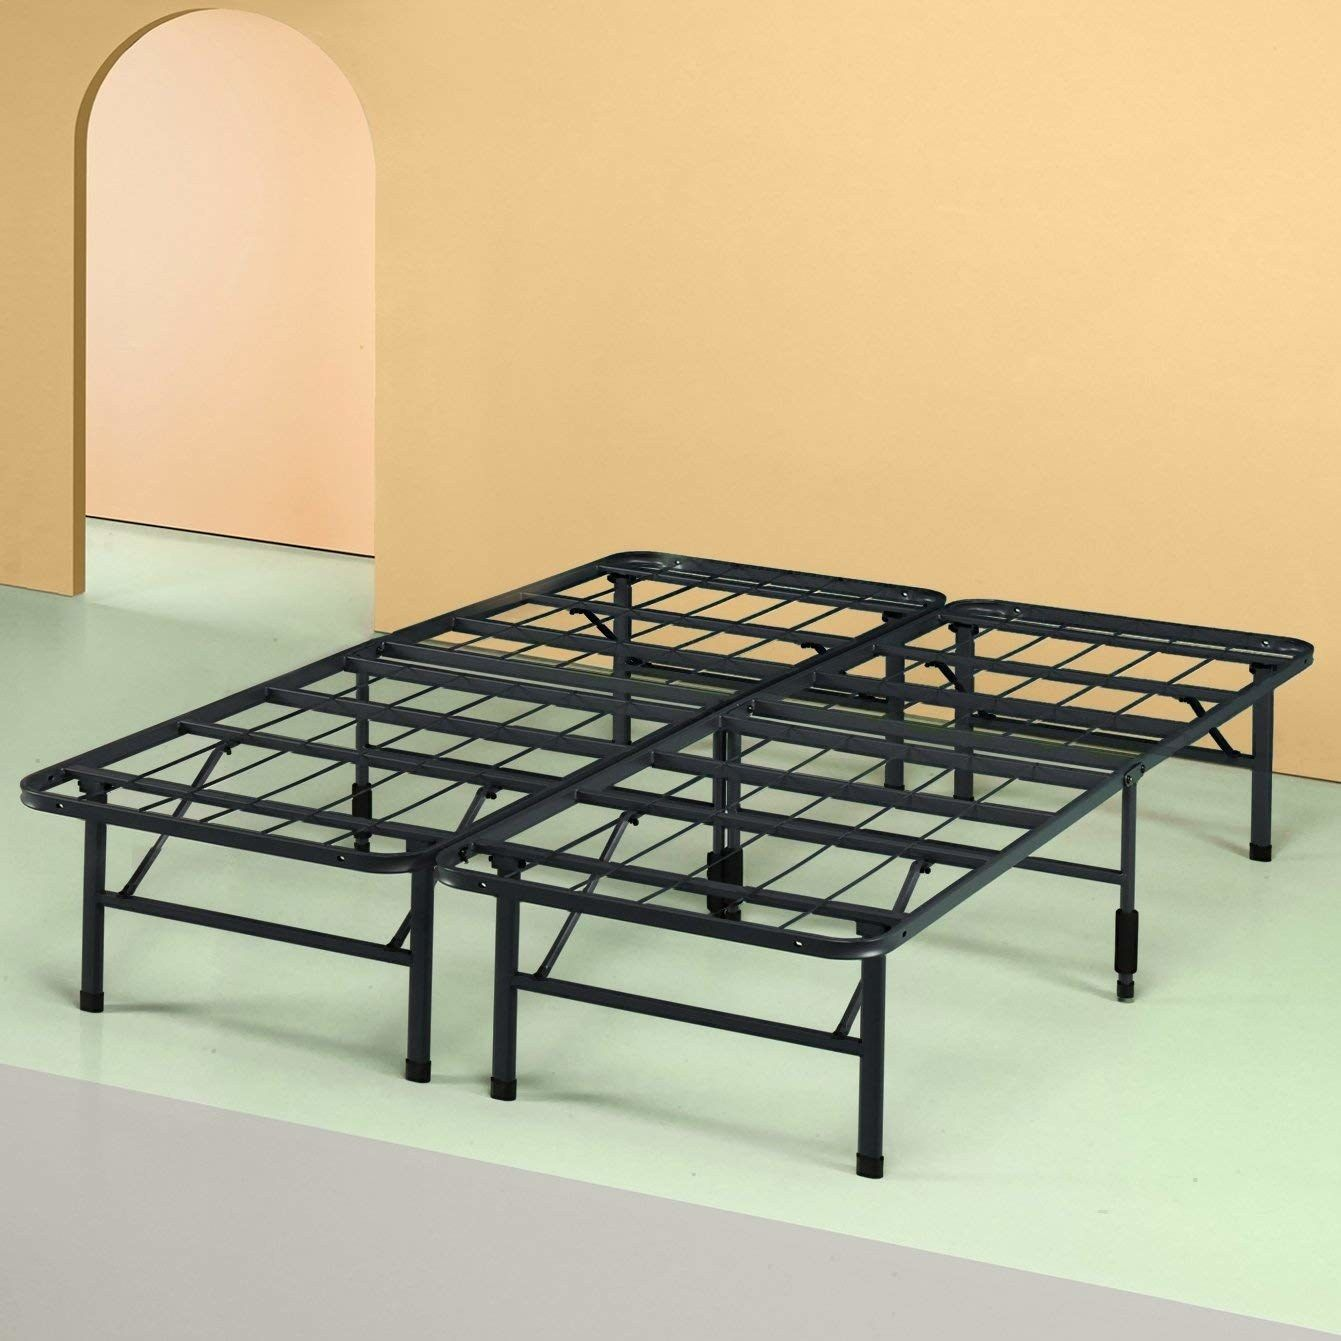 What Makes This The Most Popular Bed Frame On Amazon Adjustable